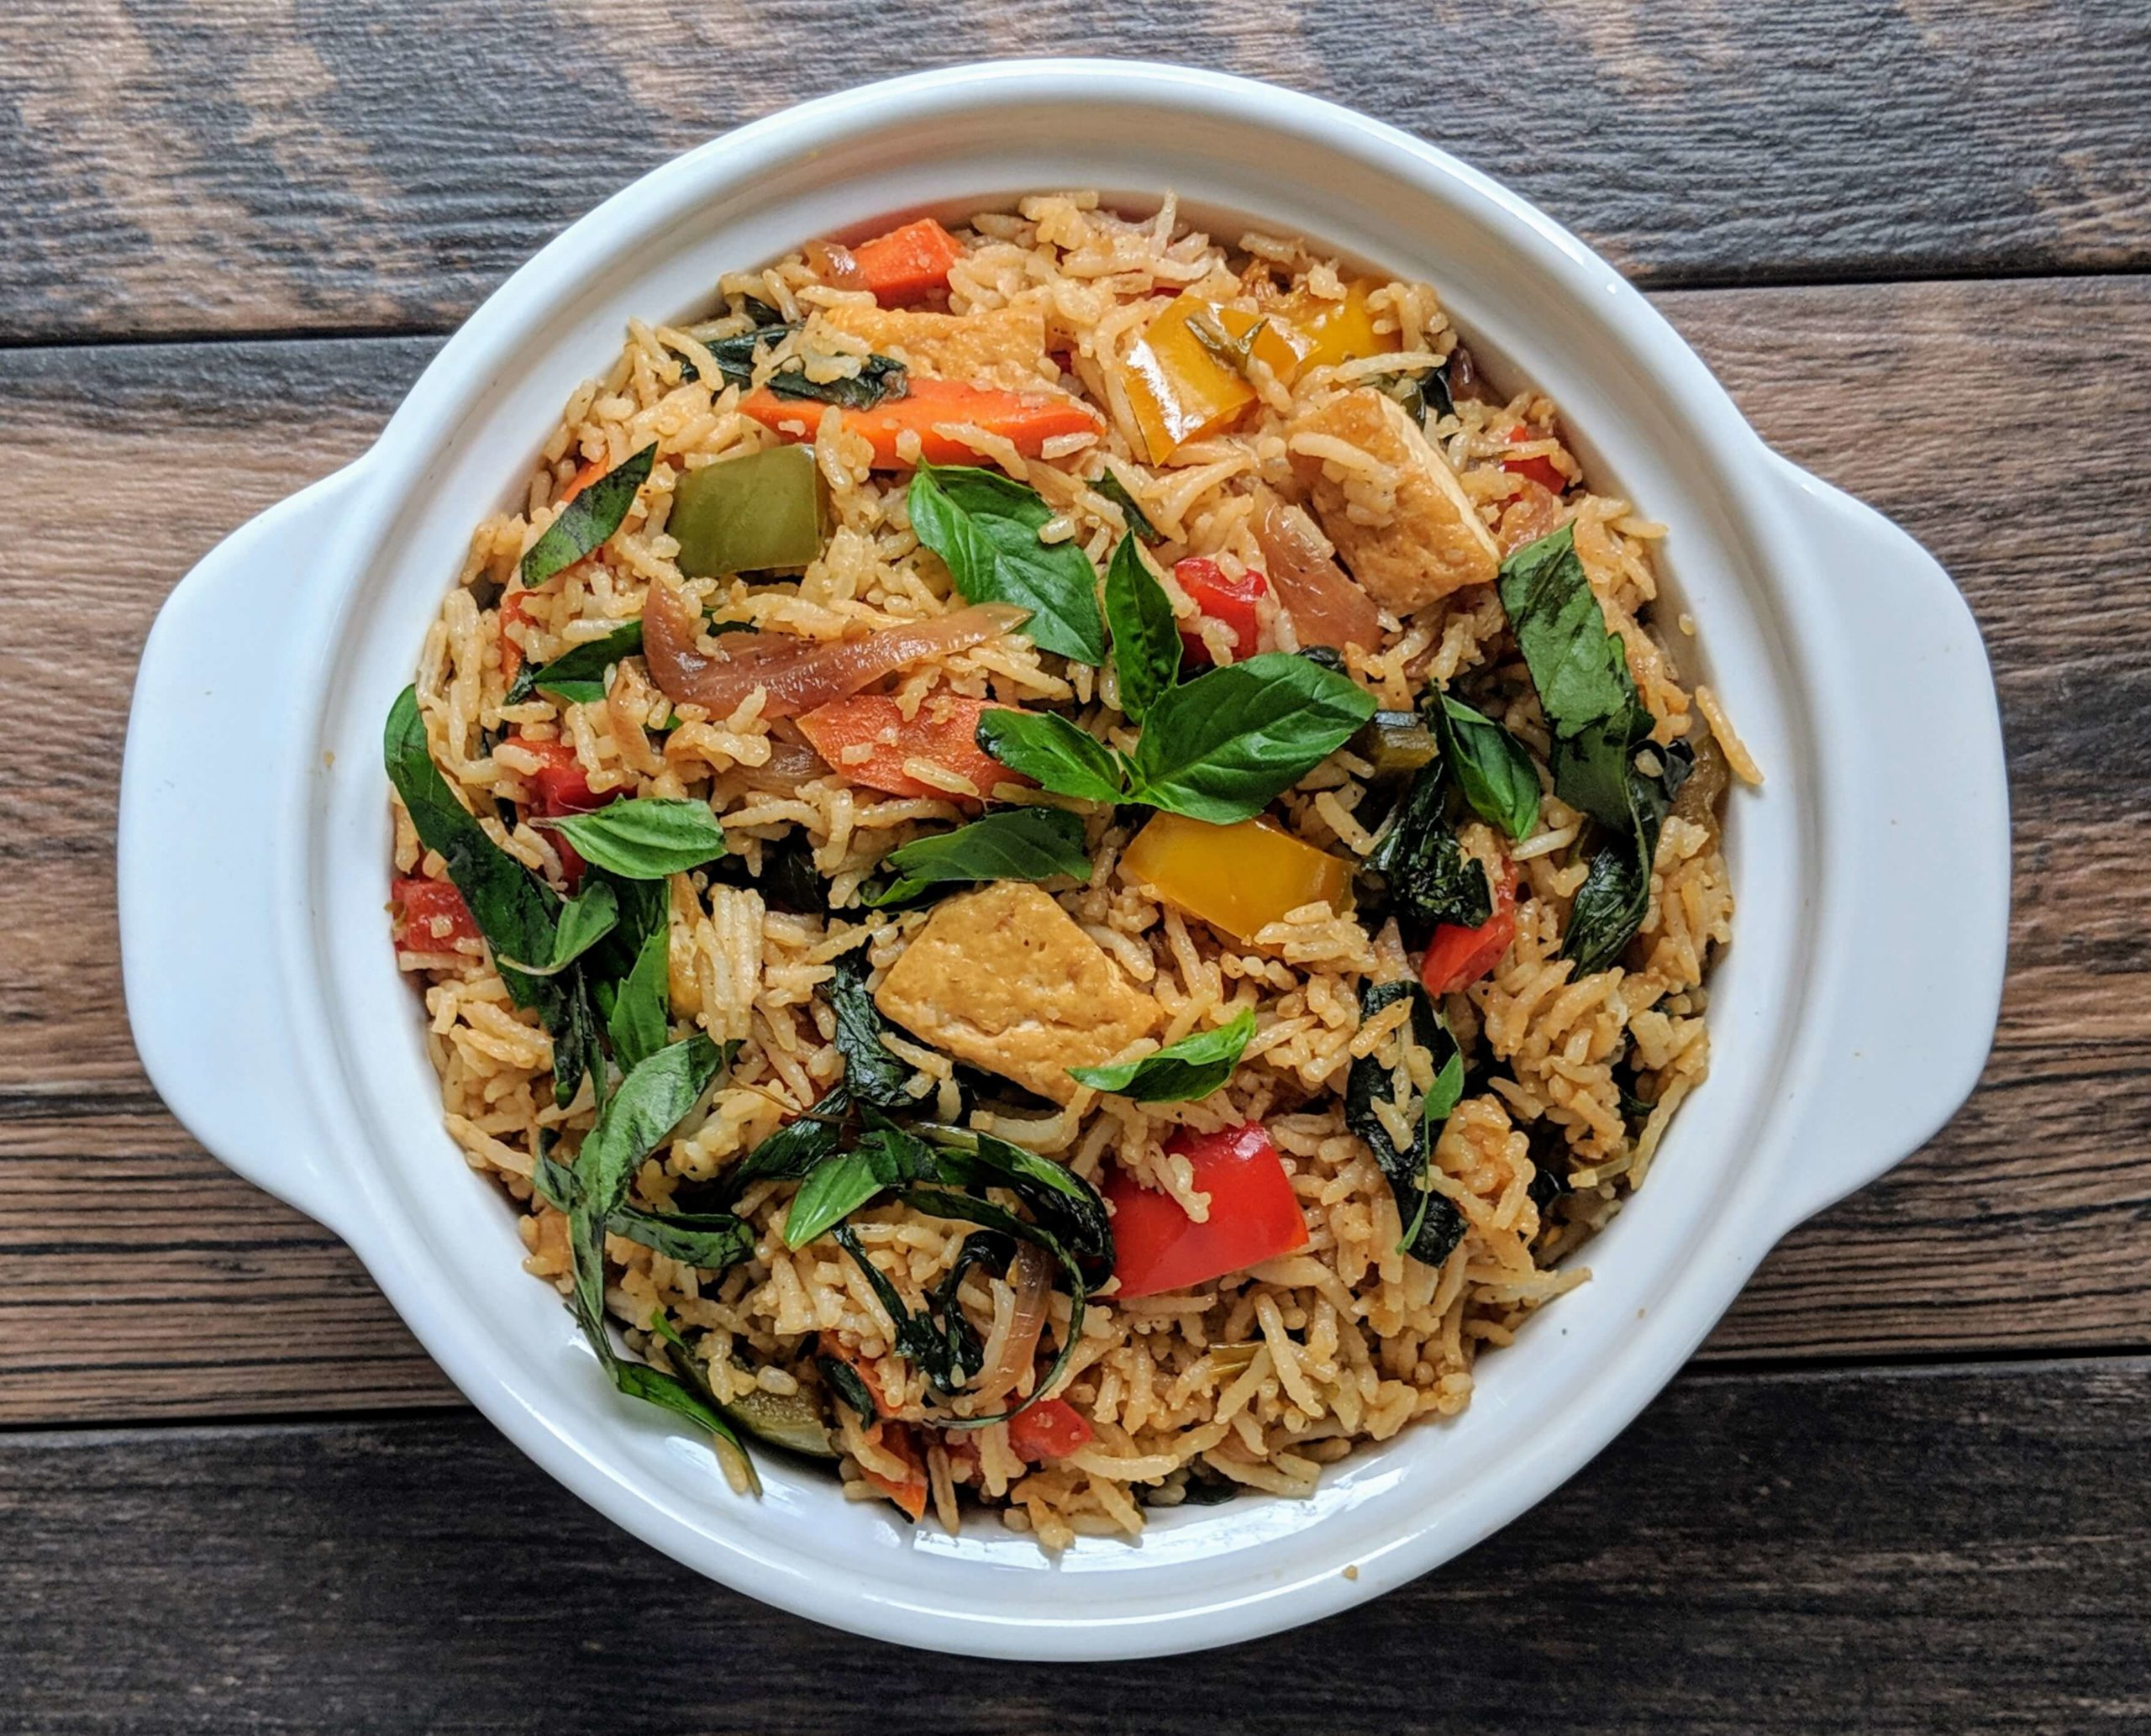 Thai Basil Fried Rice Recipe Step By Step Instructions